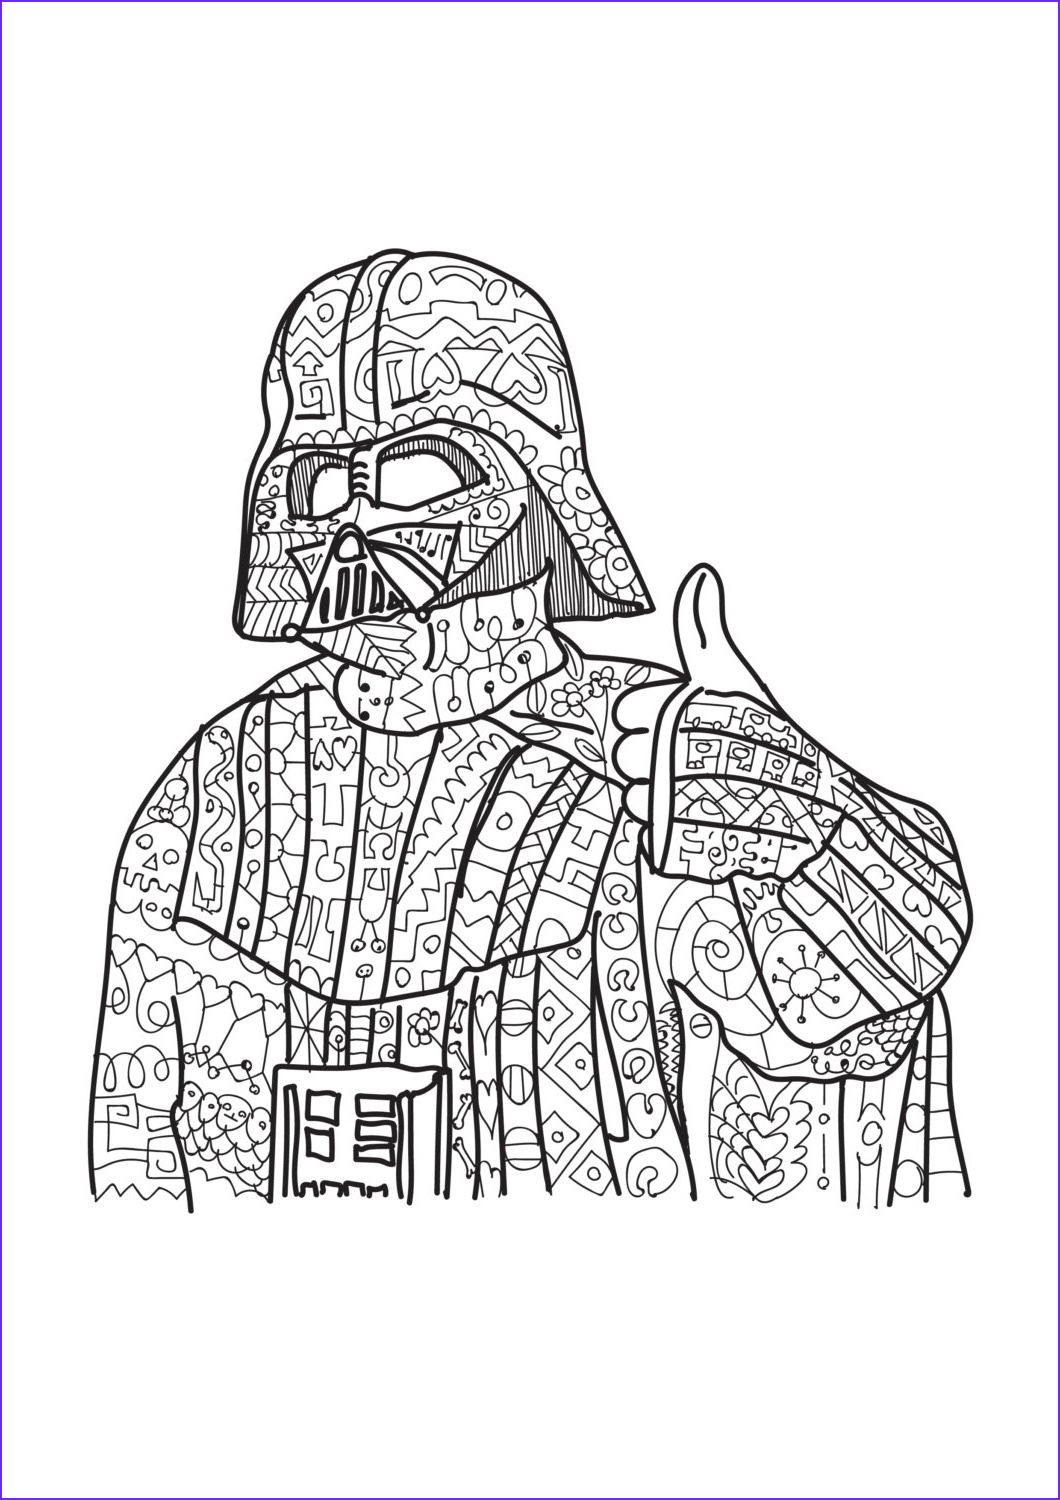 Star Wars Adult Coloring Pages Cool Photos Darth Vader Star Wars Coloring Page Adult Coloring